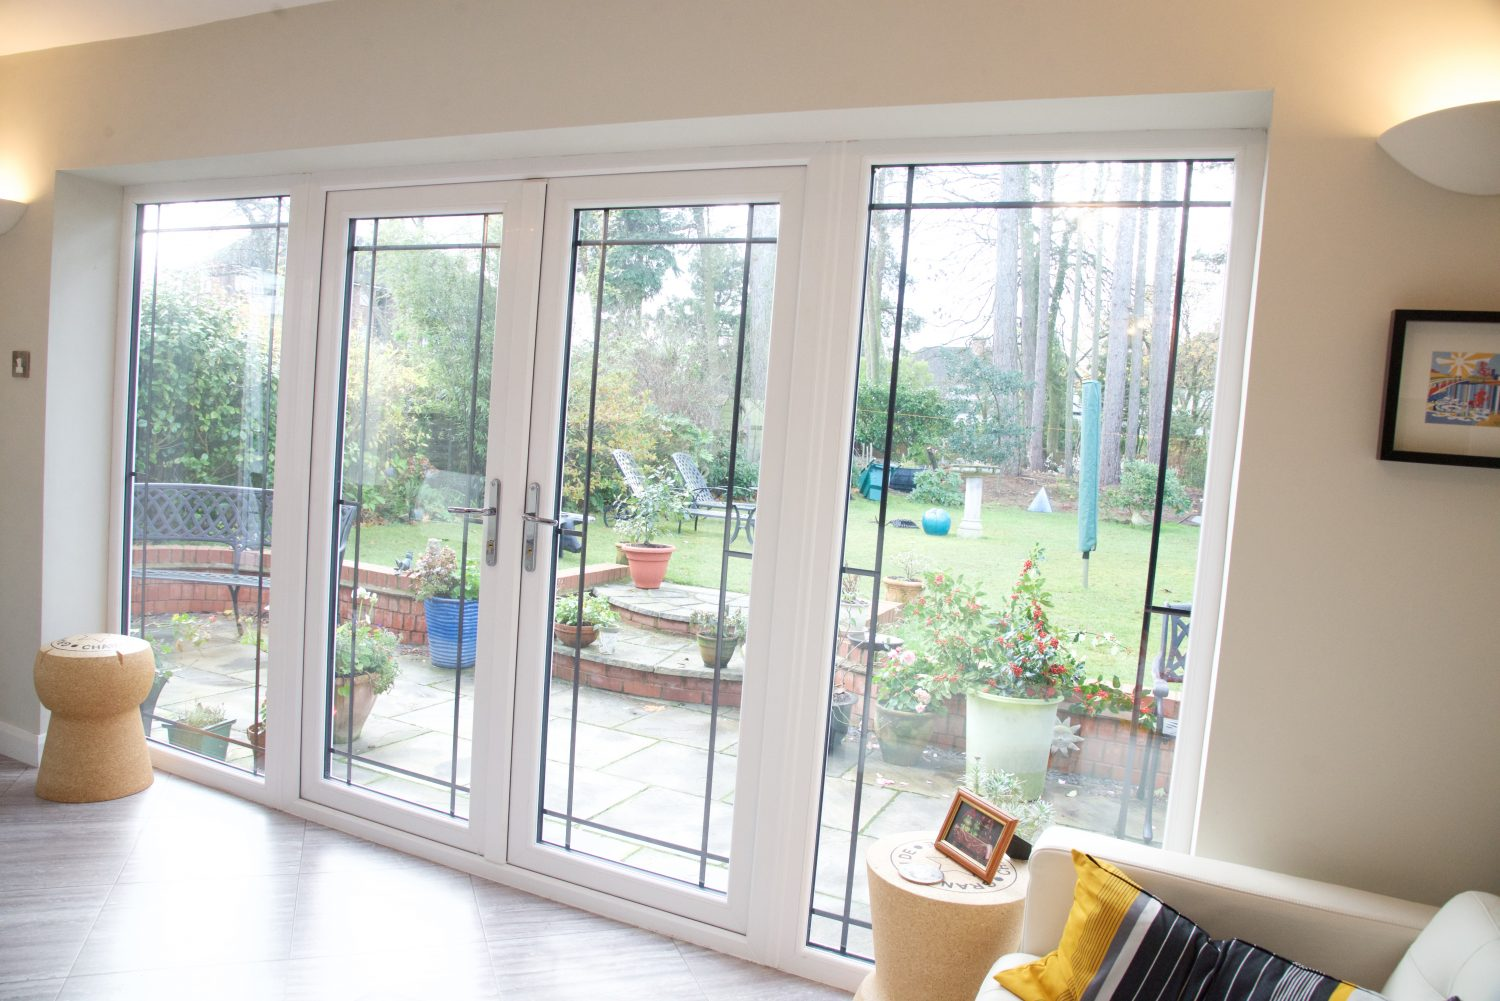 Patio french doors double glazed patio and french for Patio doors with windows that open